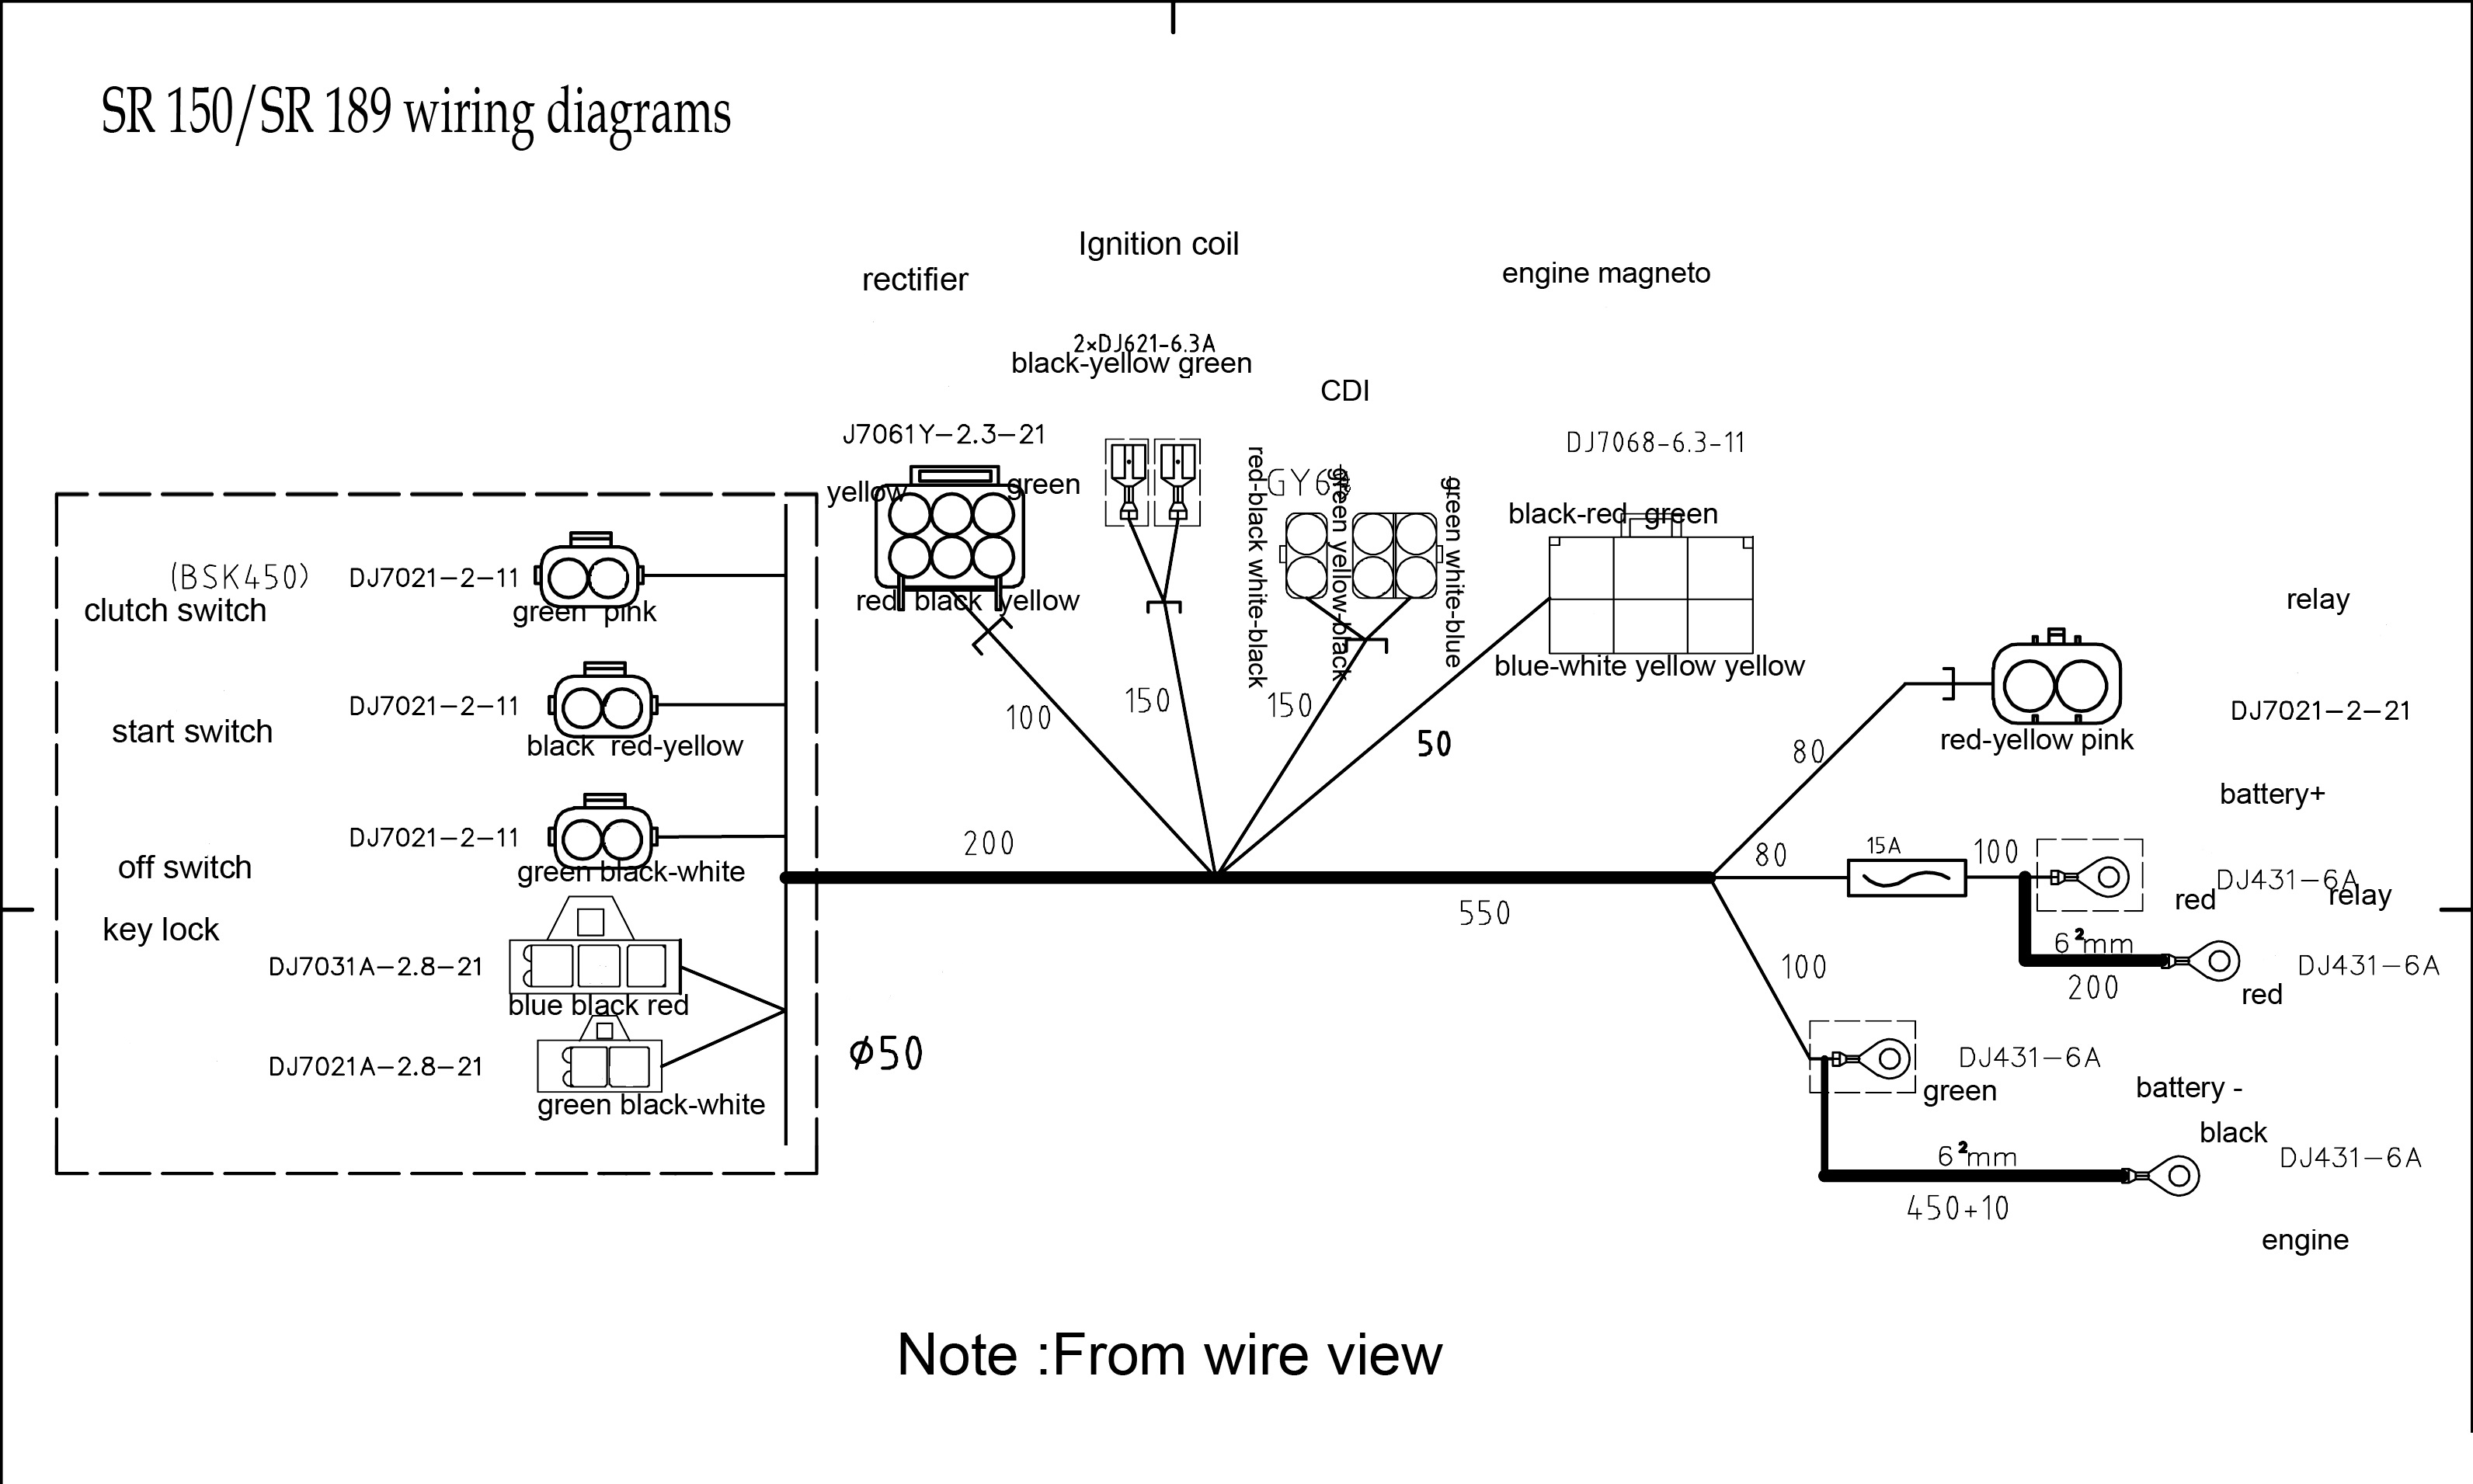 Tb Exp additionally Sr Wiring Diagram furthermore Ct Ym Qu Koudjuwhibki Vxzinlrpdkrgx Rkwvjlovvkykr Nfbewjhox Fdyzvyr Dxnfofvmu W also Orig moreover S L. on 49cc gy6 scooter wiring diagram